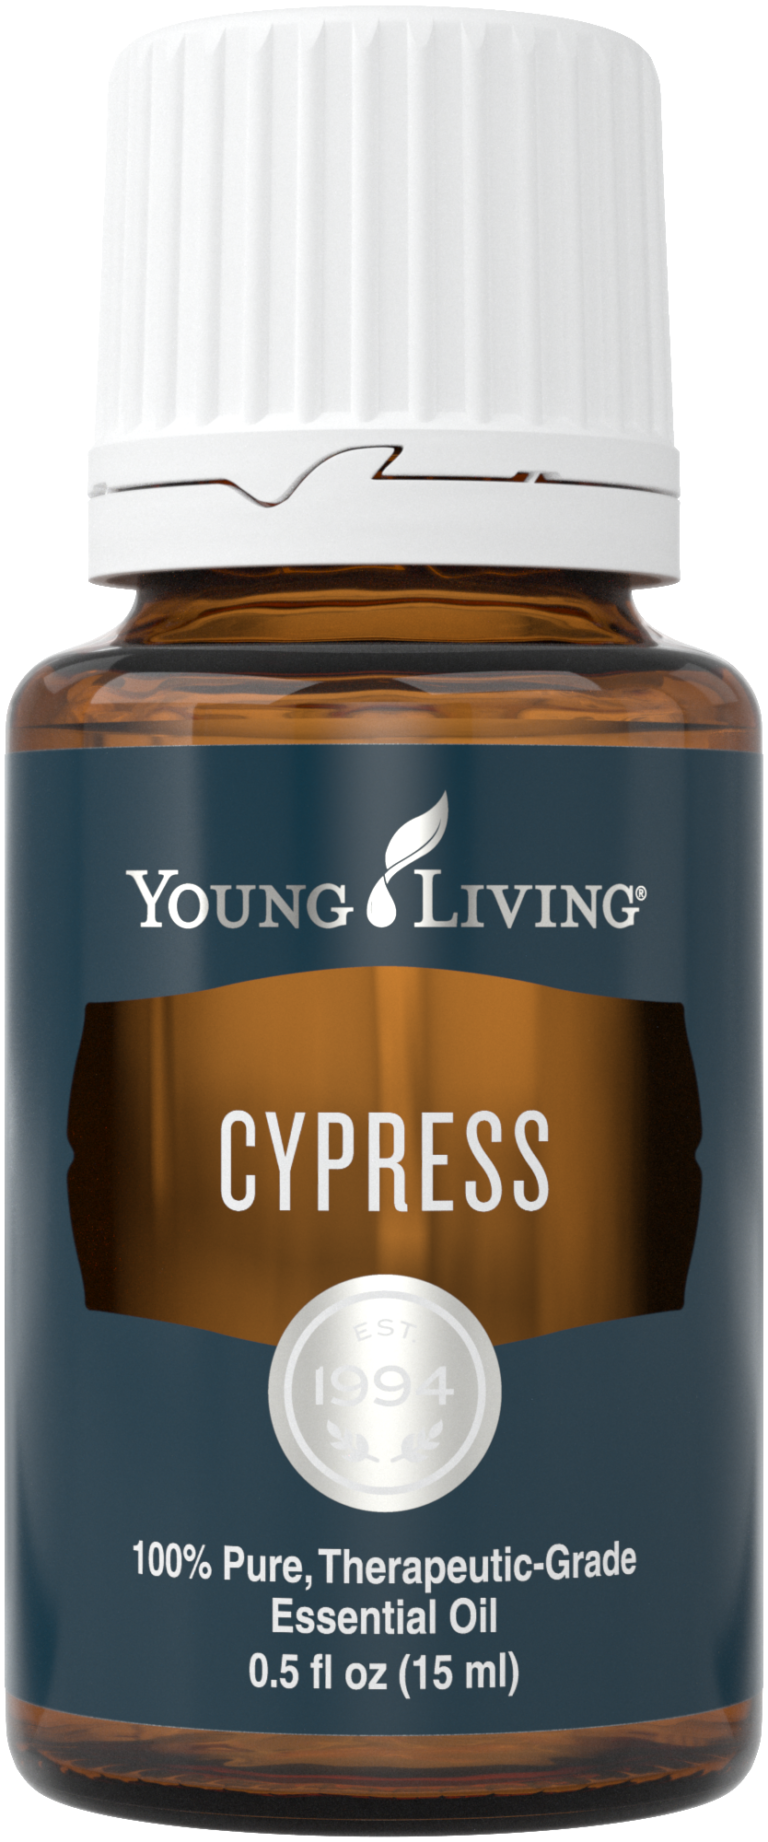 cypress_15ml_silo_us_2016_23899142064_o